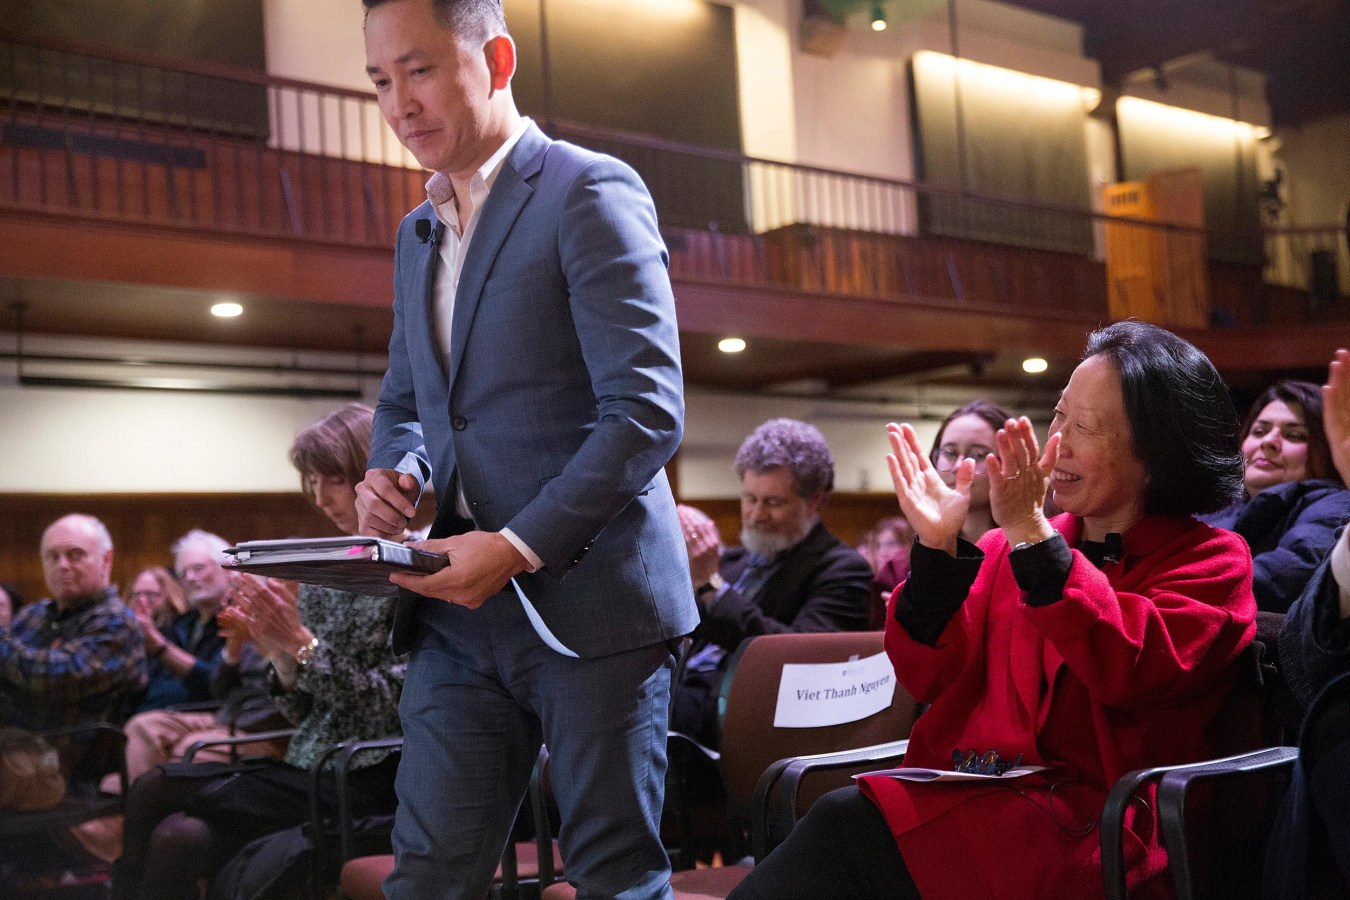 Gish Jen (right) applauds Nguyen as he takes the stage. Jon Chase/Harvard Staff Photographer